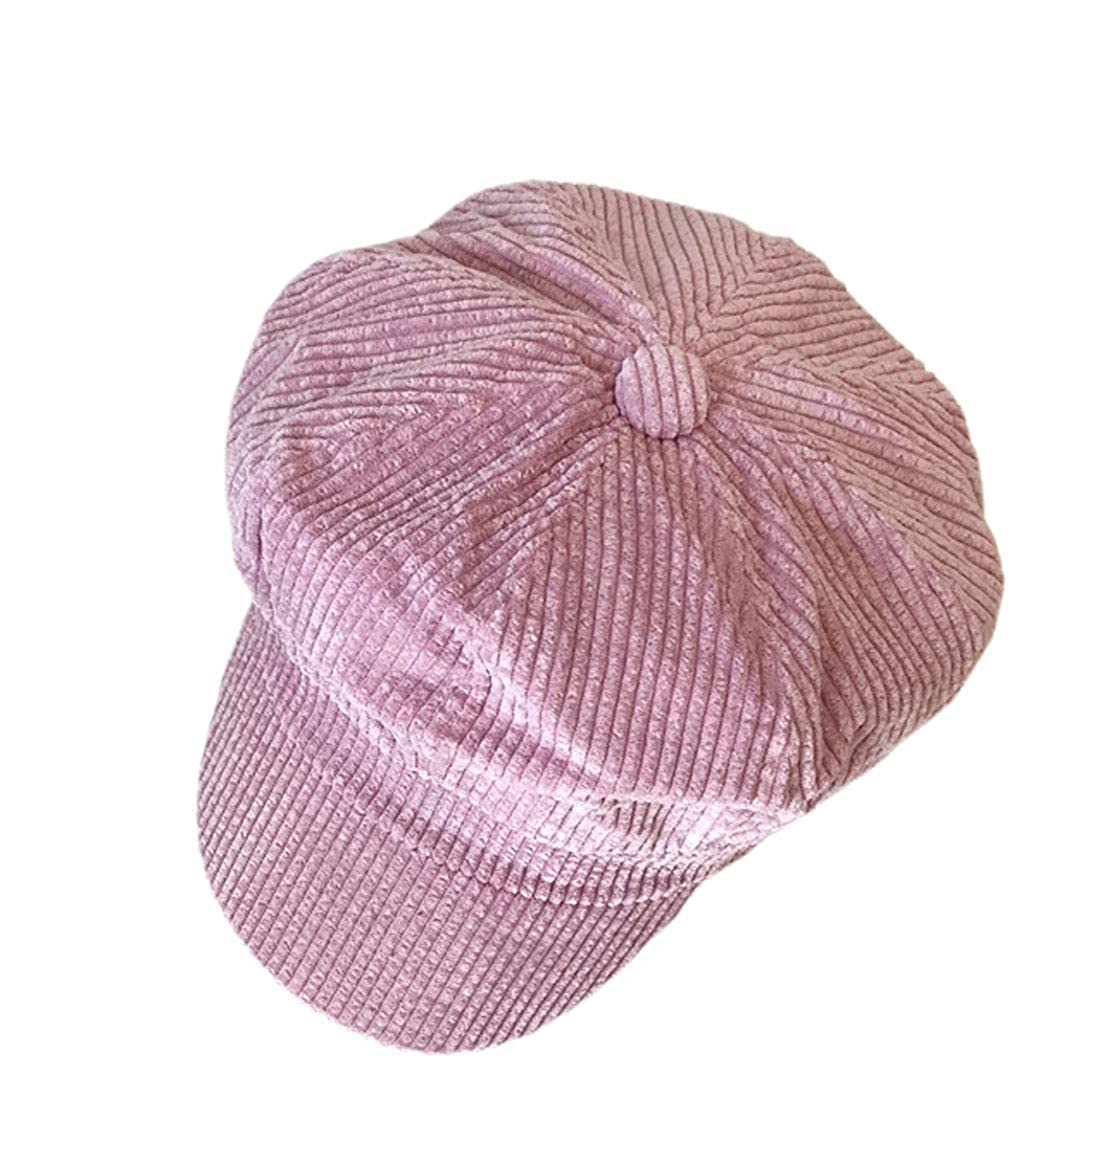 ACVIP Women's Candy Color Corduroy Newsboy Cap Baker Boy Hat